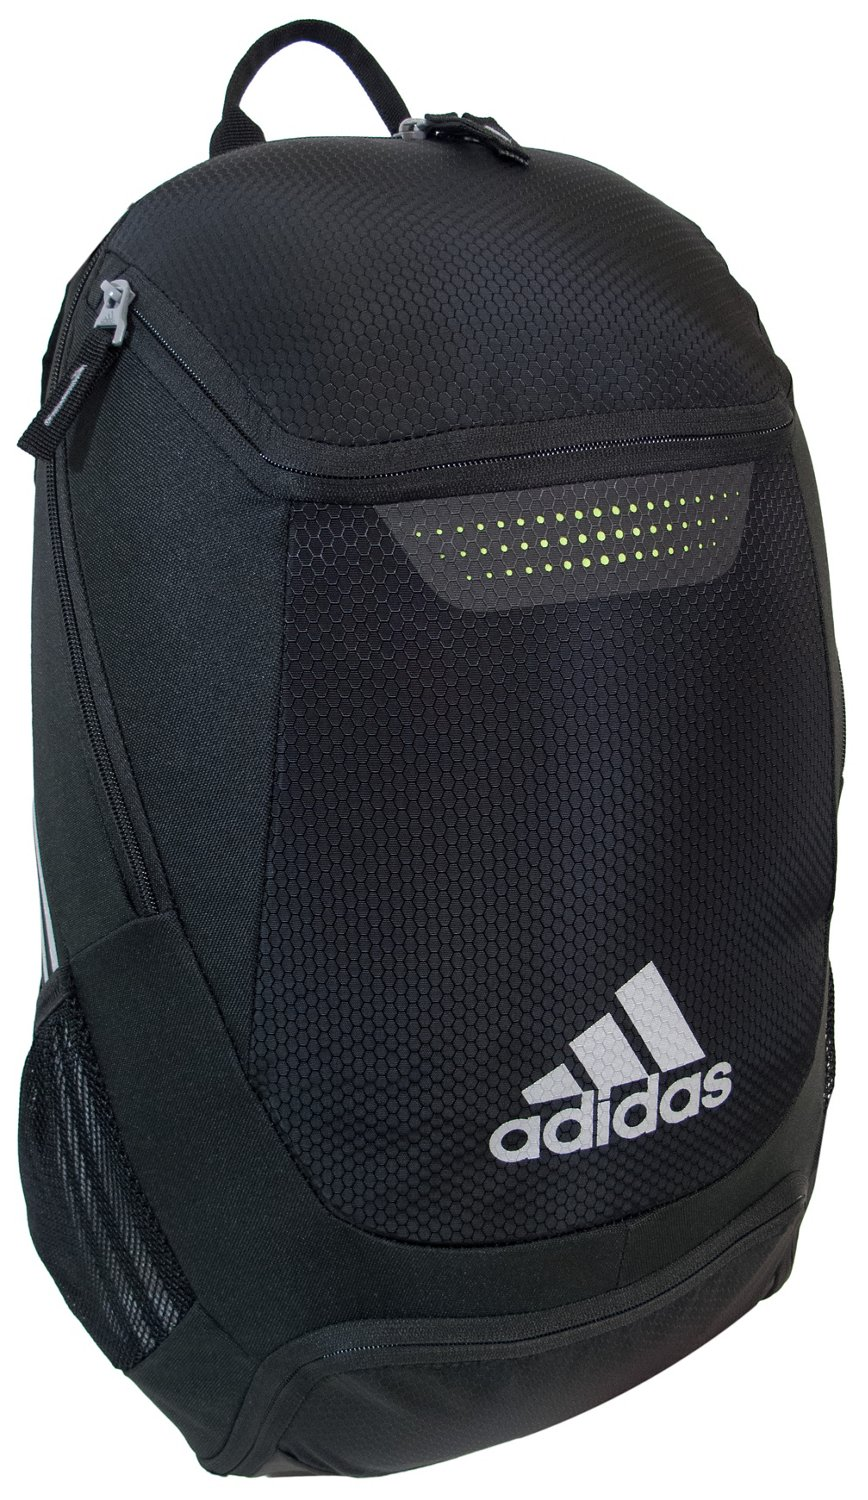 Display product reviews for adidas Stadium Team Backpack